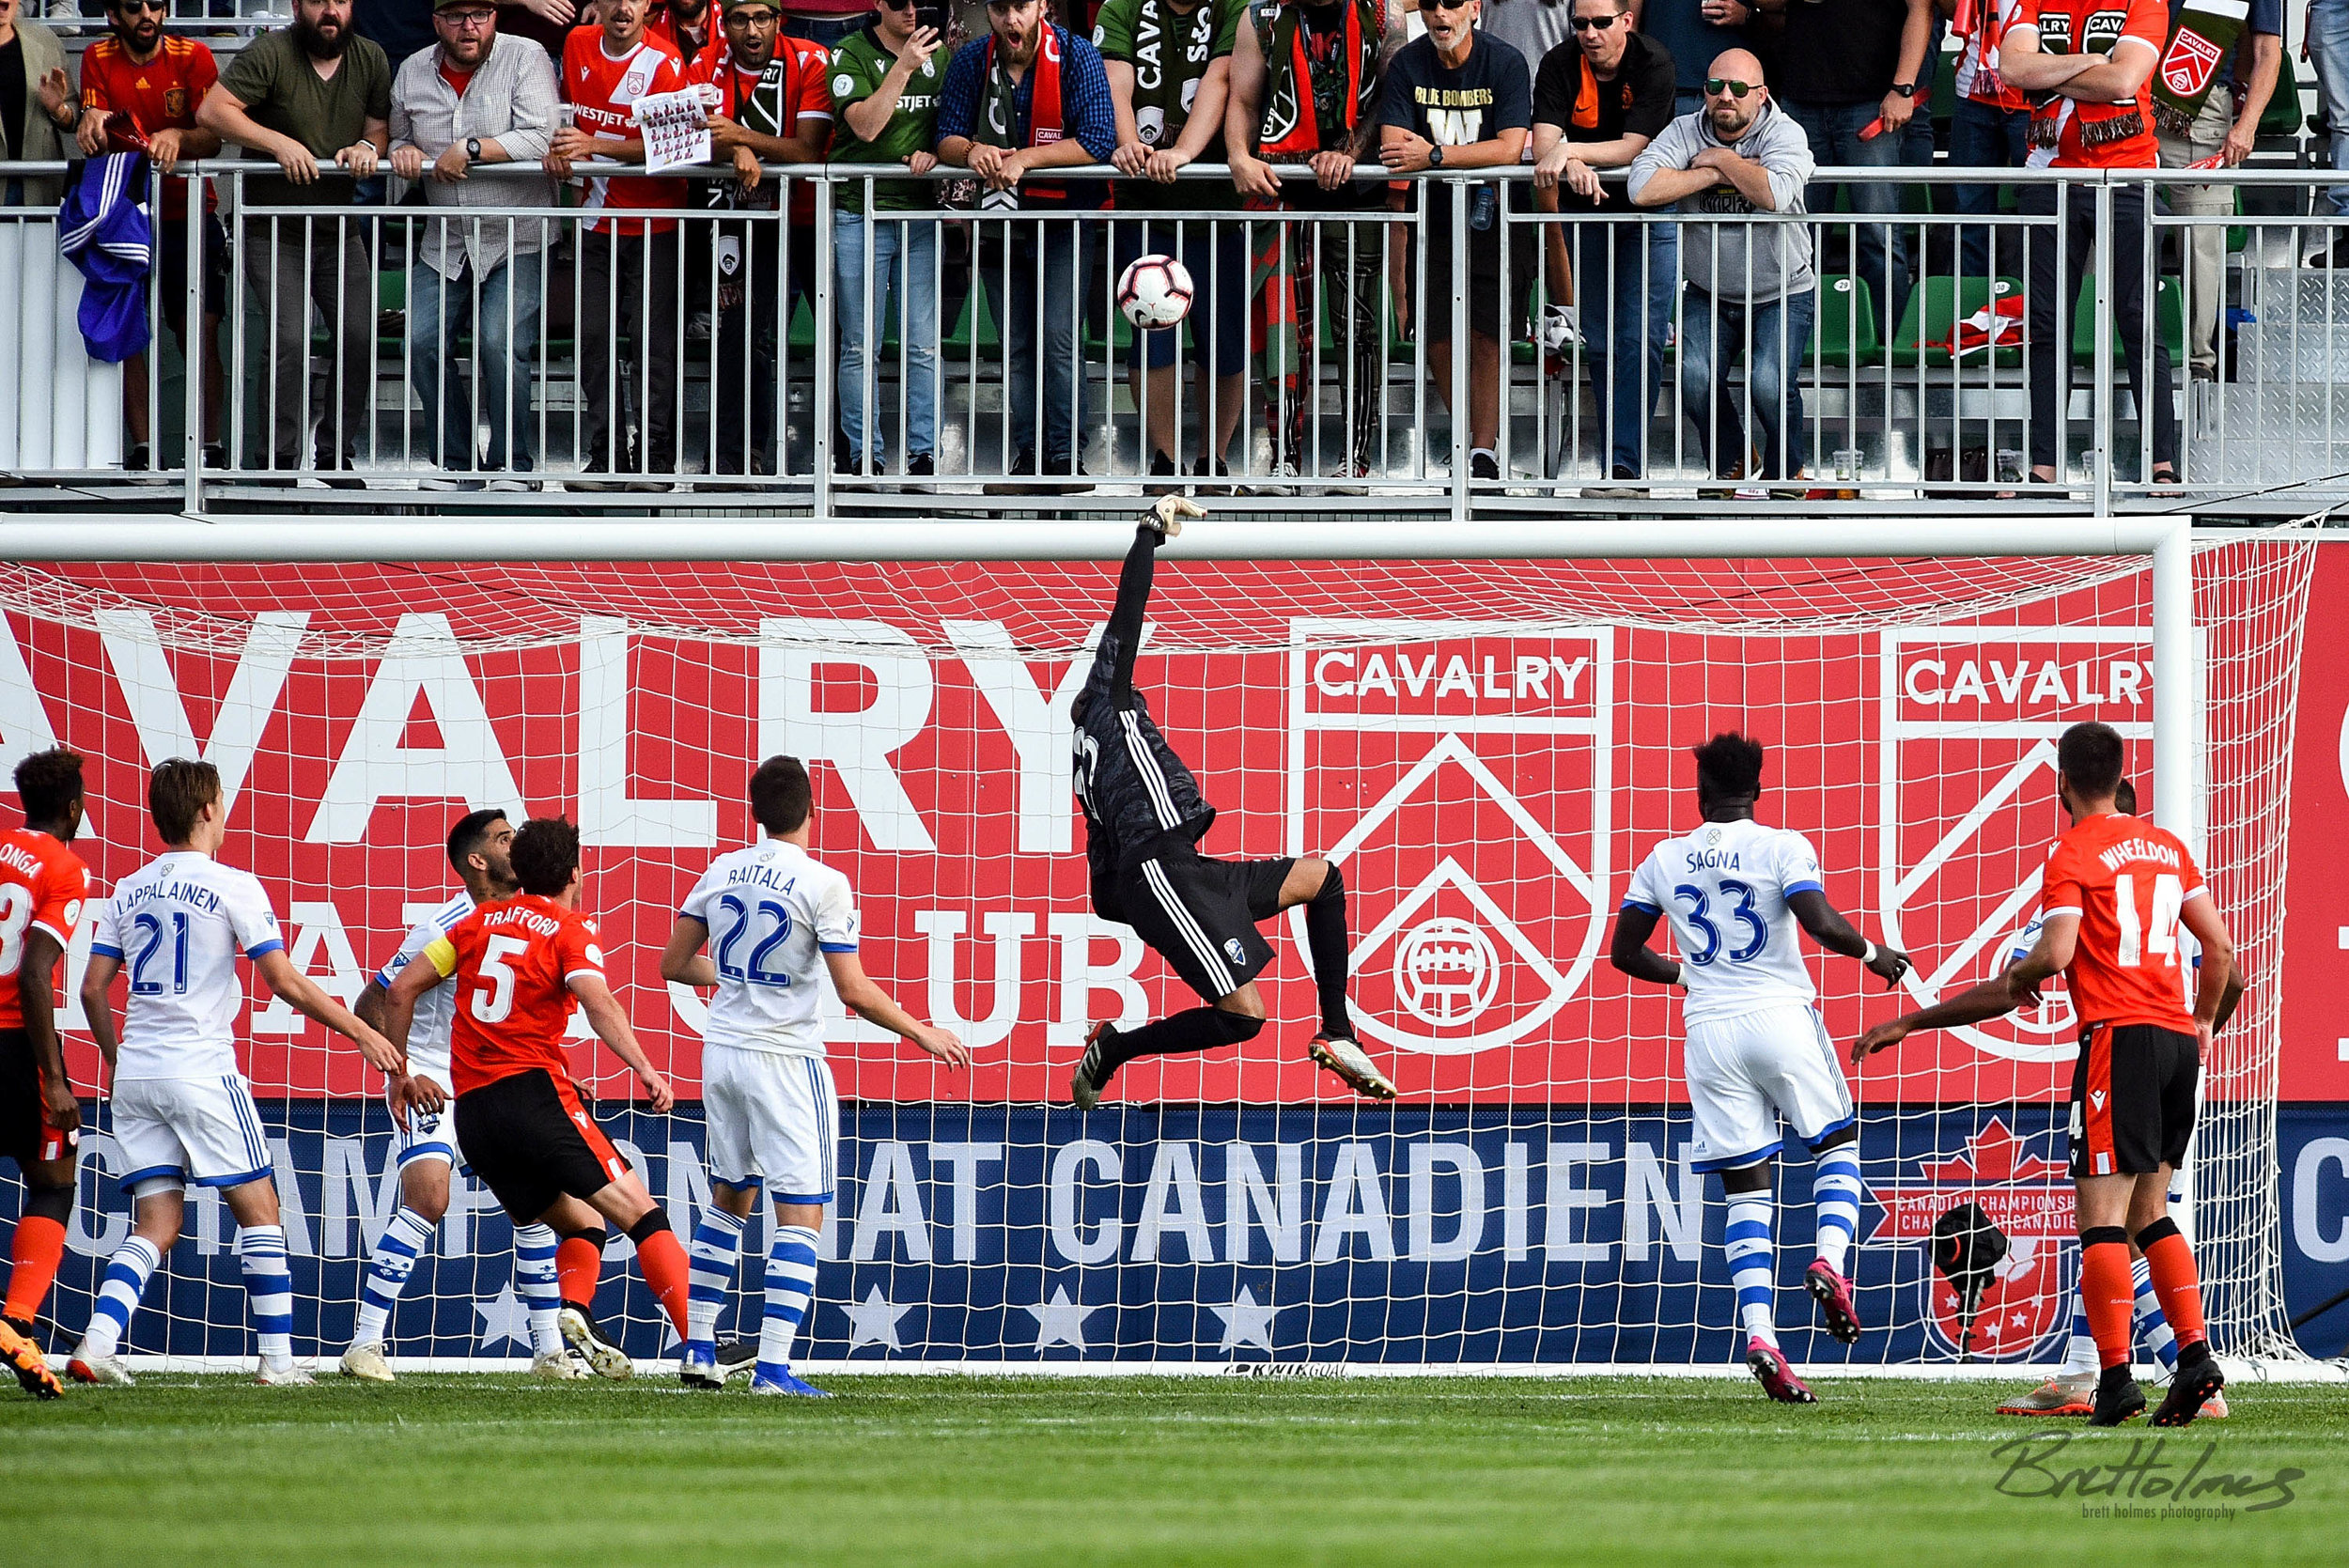 CALGARY, AB - AUGUST 14: Montreal Impact goalkeeper Clément Diop (23) makes a save during the first half of the second leg of a Canadian Championship semifinal match between the Montreal Impact and Cavalry FC on August 14, 2019, at ATCO Field at Spruce Meadows in Calgary, AB. (Photo by Brett Holmes/Icon Sportswire)